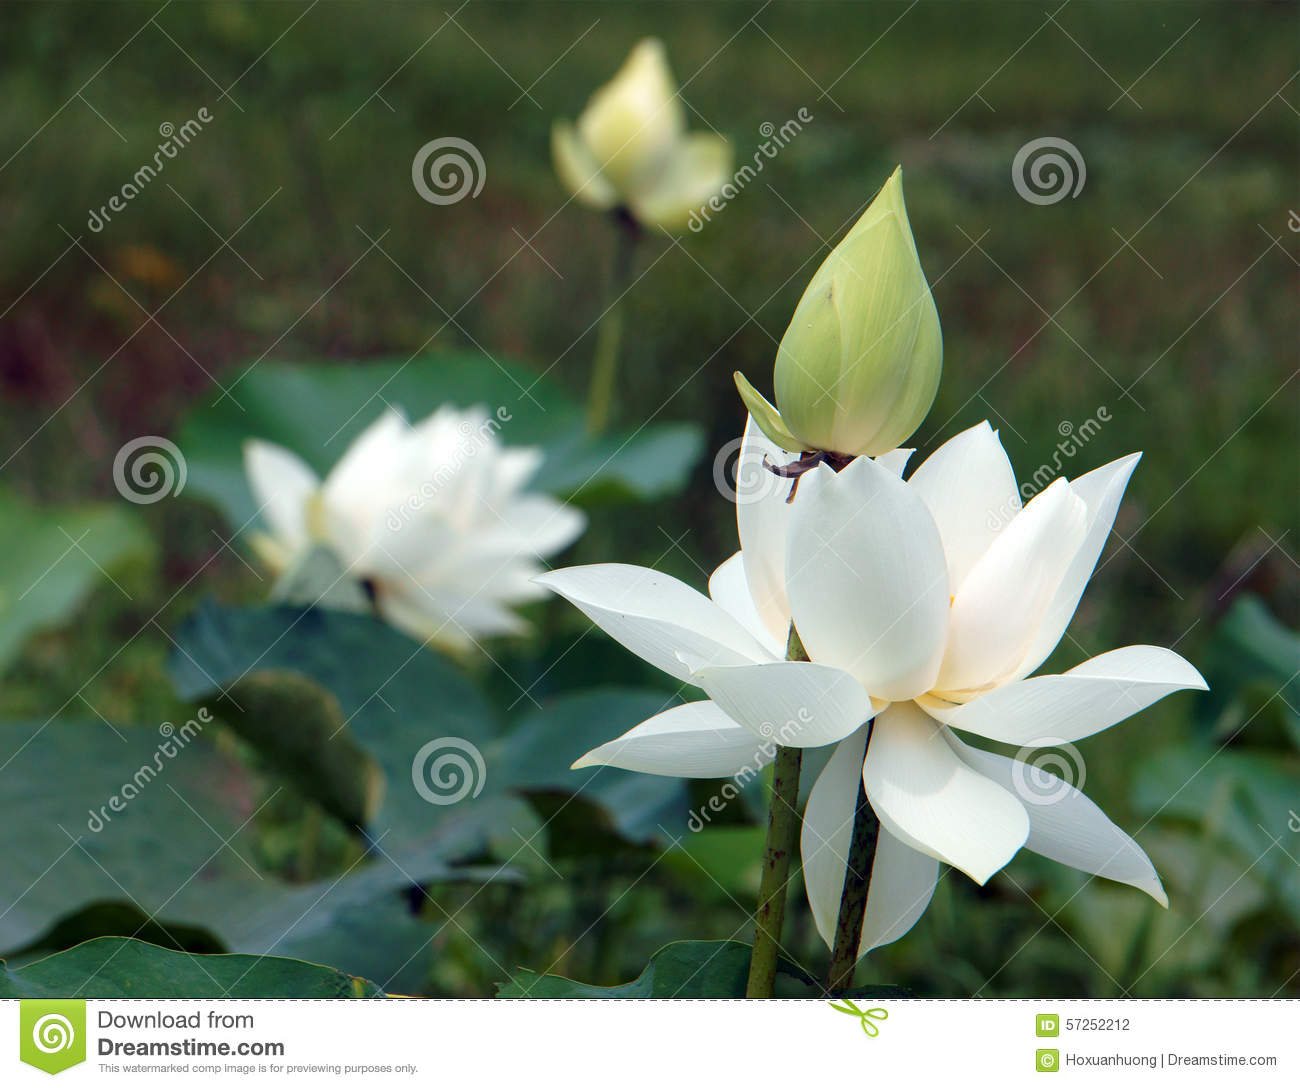 Vietnamese flower white lotus flower stock photo image of closet vietnamese flower pure white lotus flower symbol of vietnam at mekong delta closeup of beautiful bloossom flower bud ob green background mightylinksfo